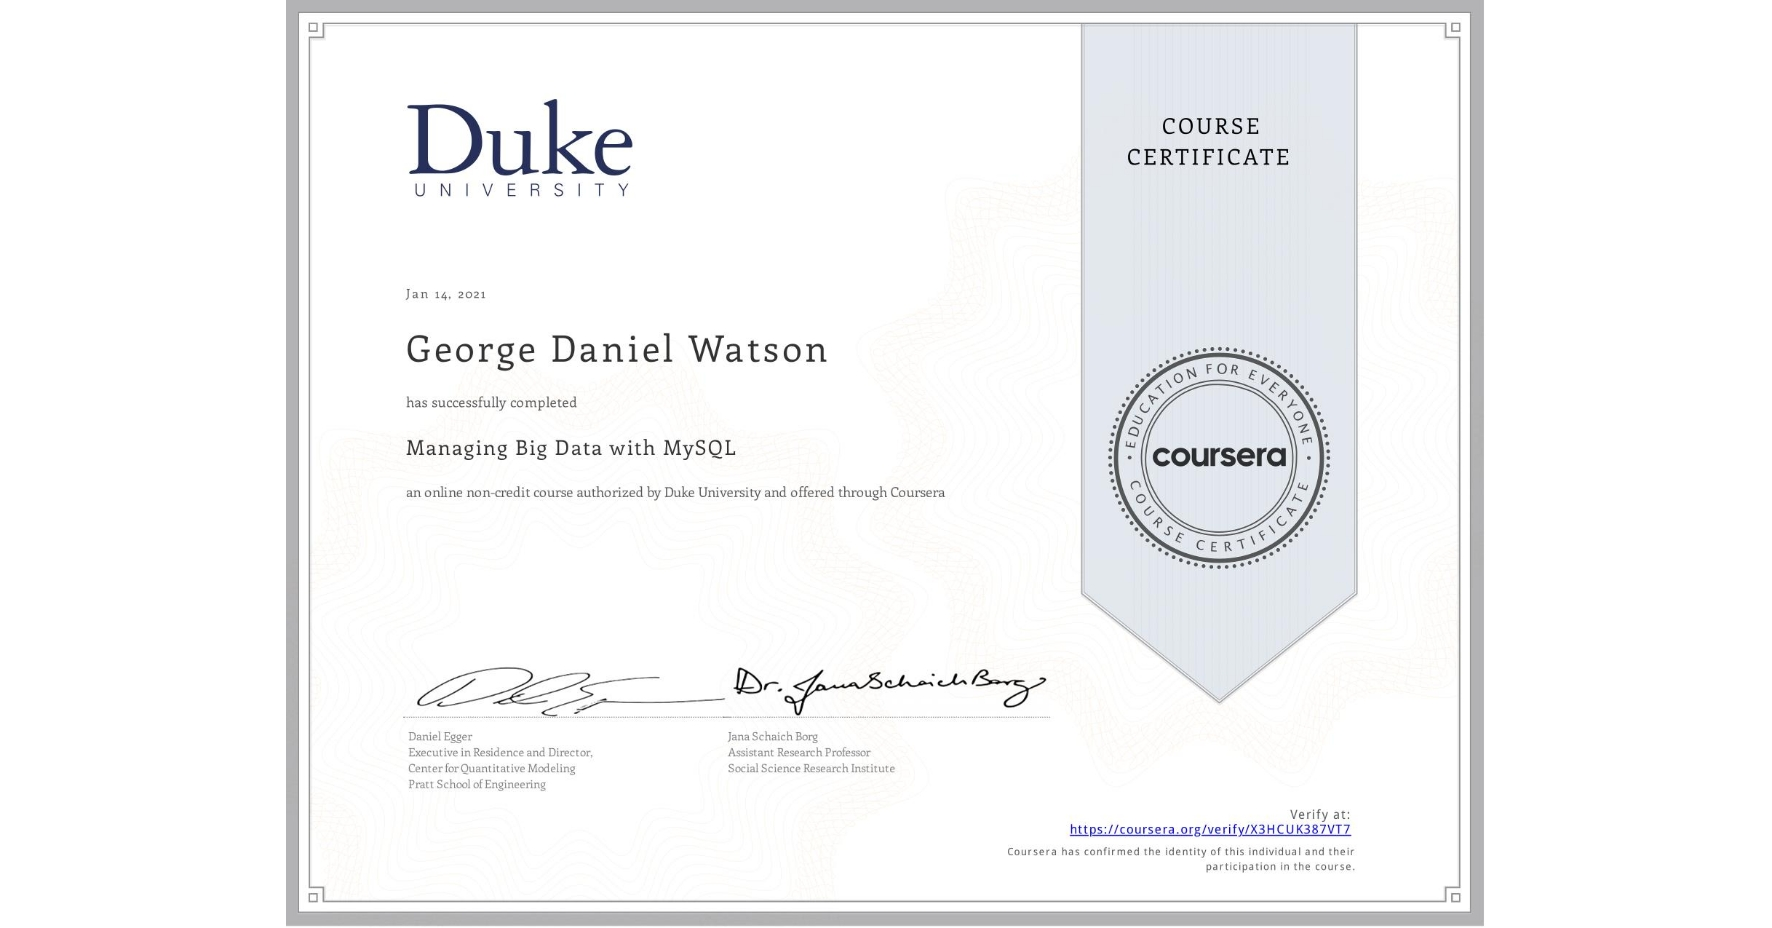 View certificate for George Daniel Watson, Managing Big Data with MySQL, an online non-credit course authorized by Duke University and offered through Coursera